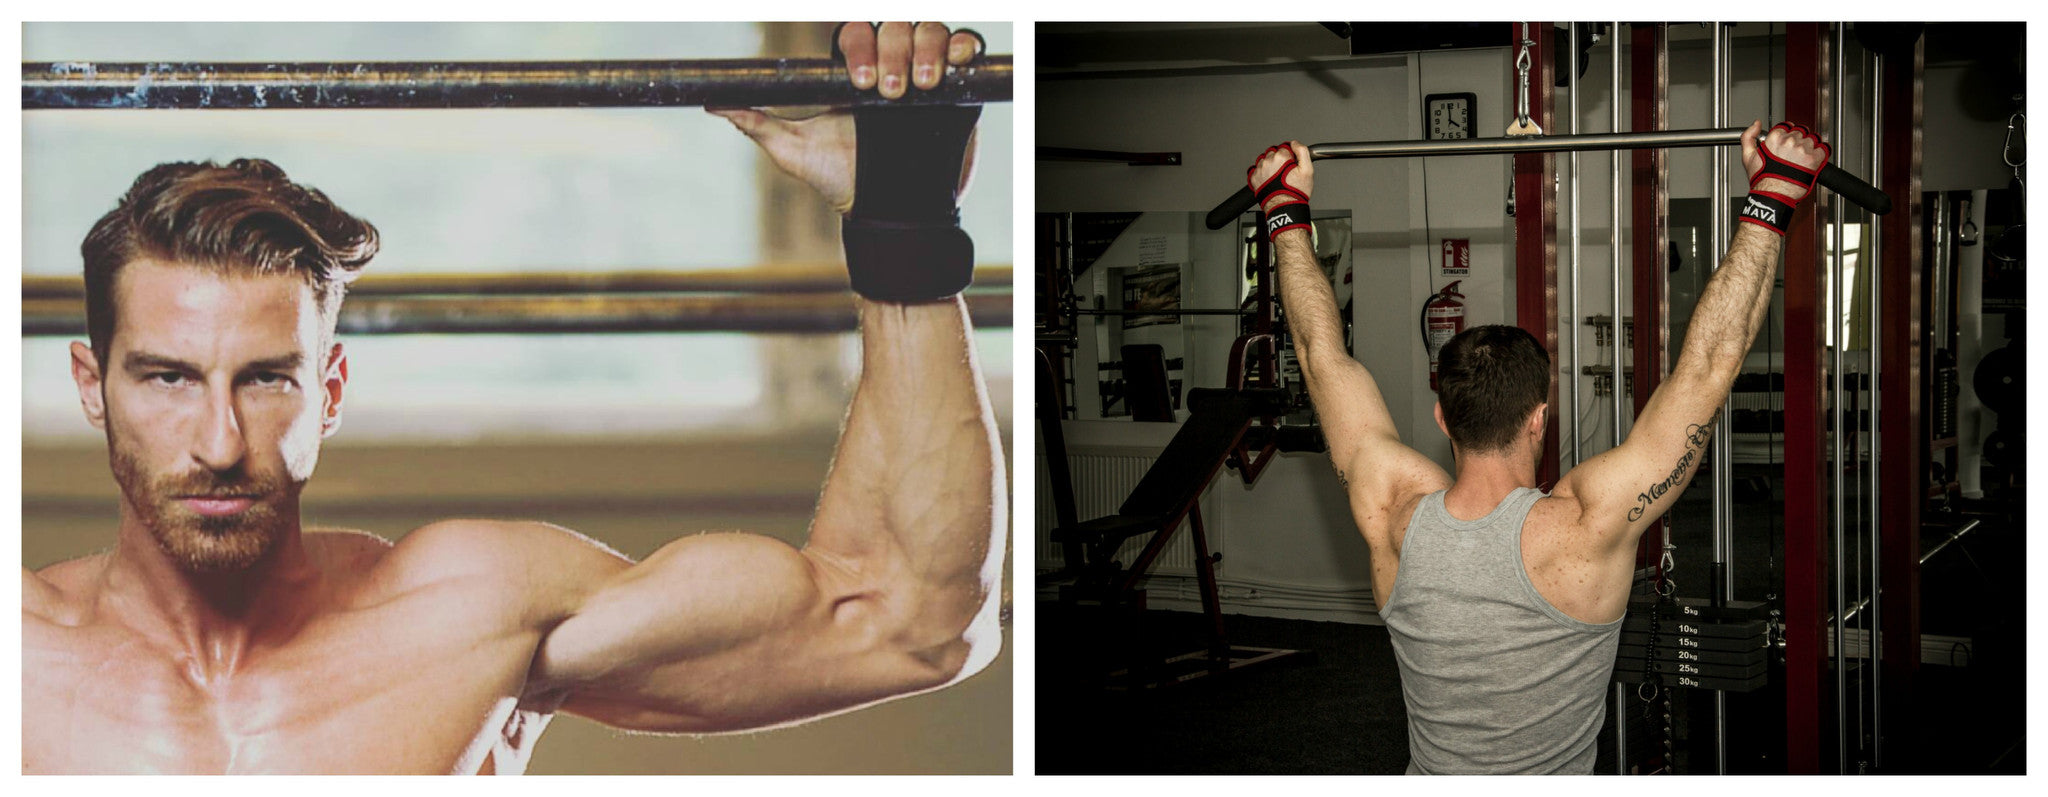 STRETCH YOUR SLEEVES IN NO TIME! GET RIPPED BICEPS & TRICEPS 💪